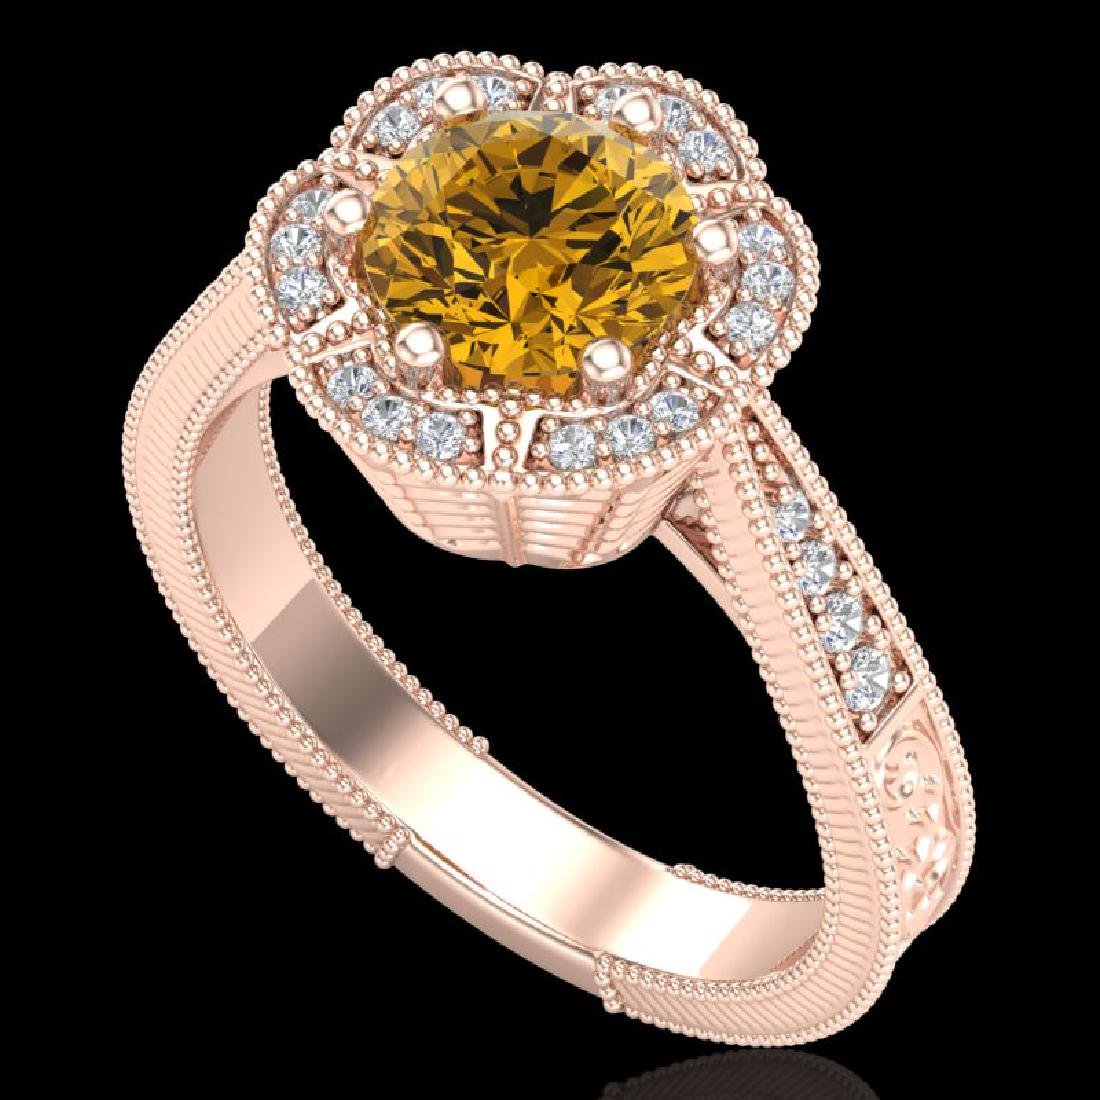 1.33 CTW Intense Fancy Yellow Diamond Engagement Art